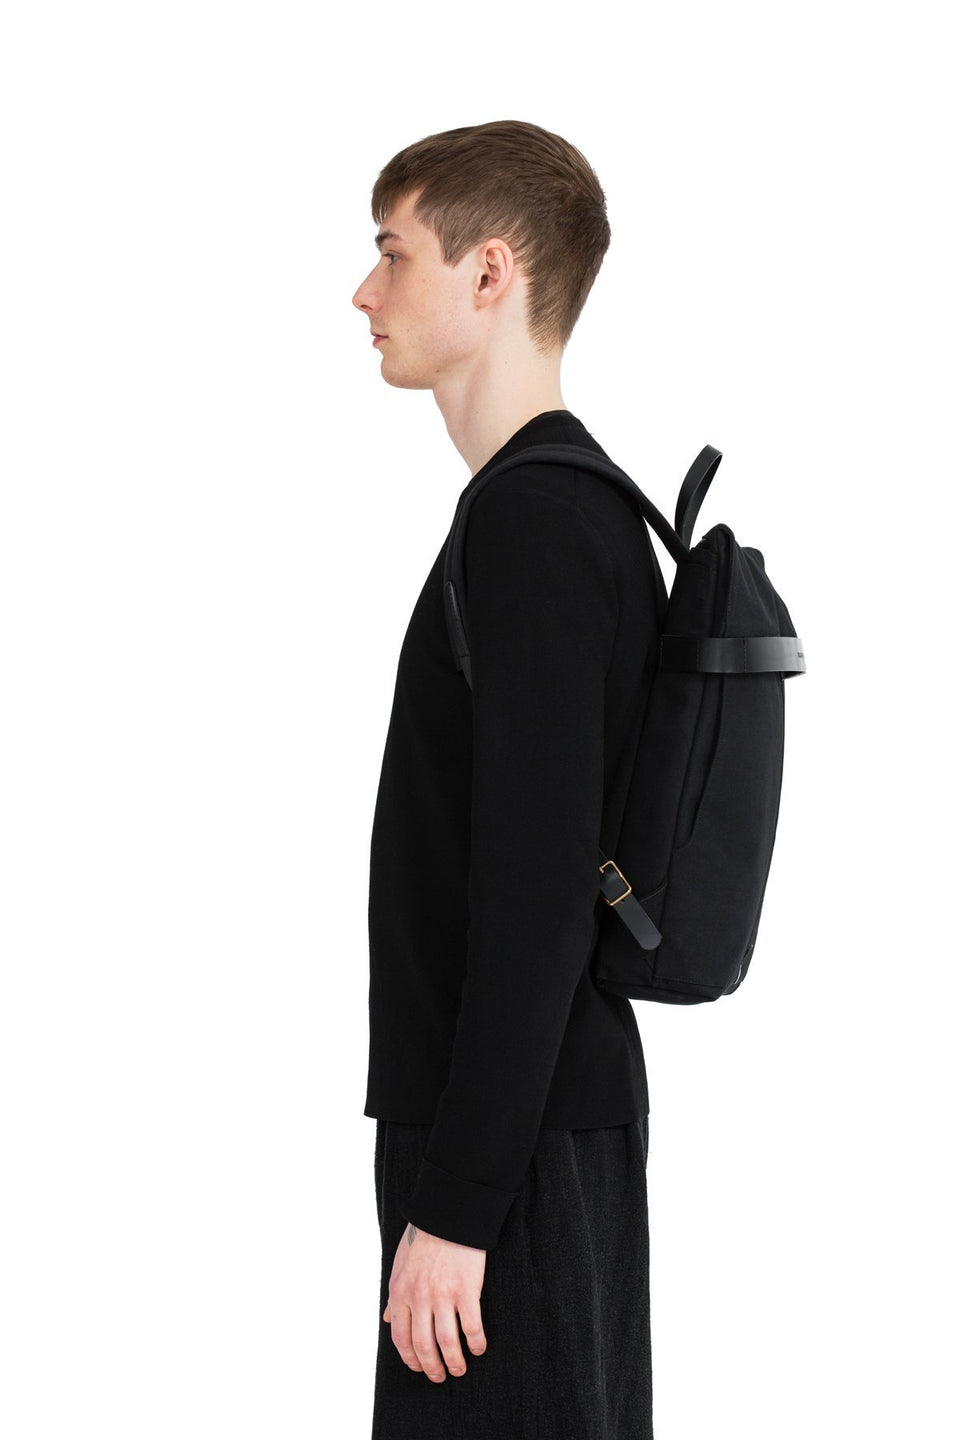 Thisispaper Atom Backpack Solid Black (sample)